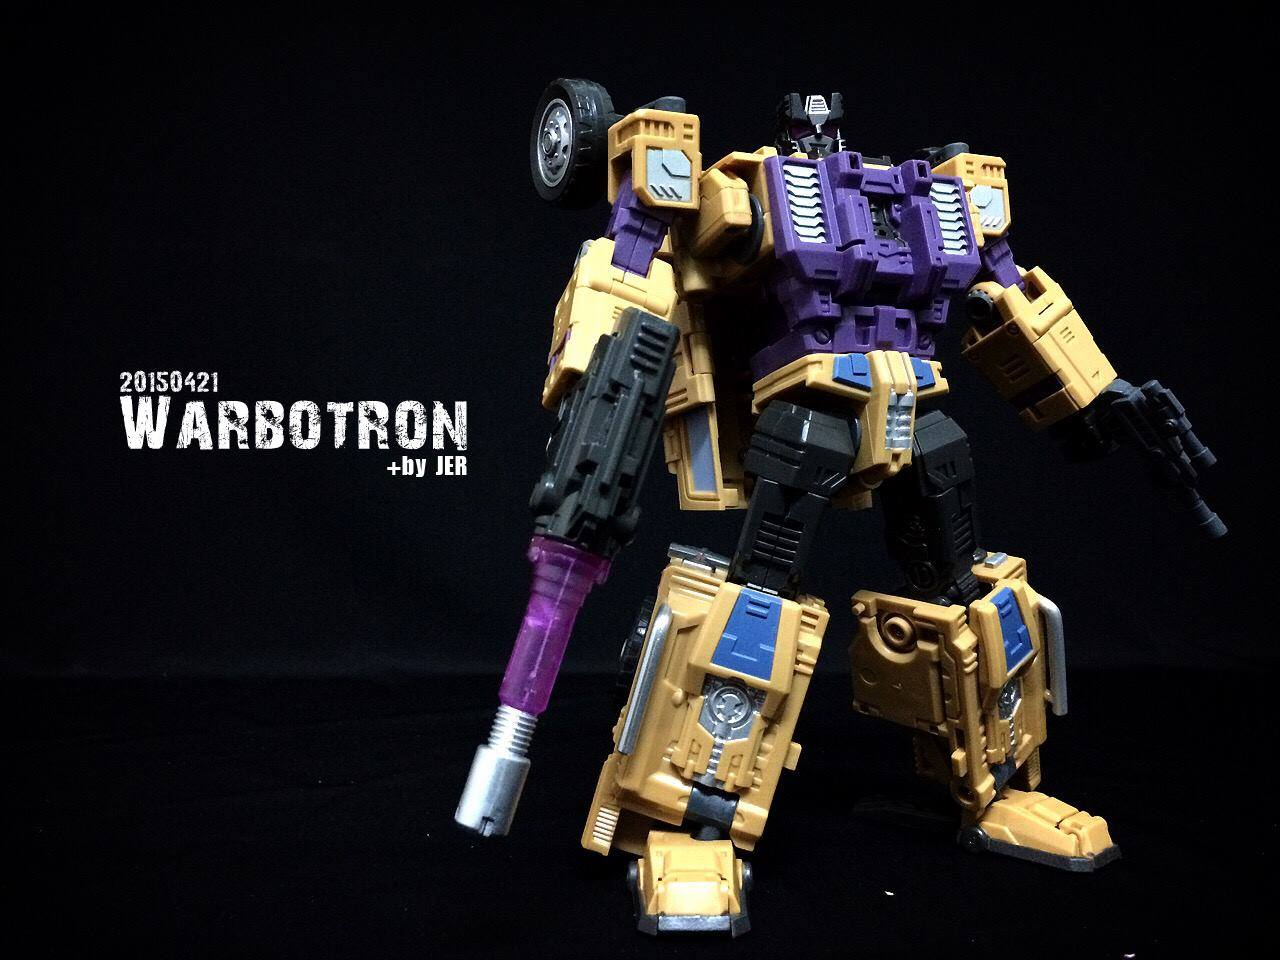 Warbotron - WB01 (Unofficial Bruticus)-1553441_633409596758547_7474237034614774269_o-1-.jpg